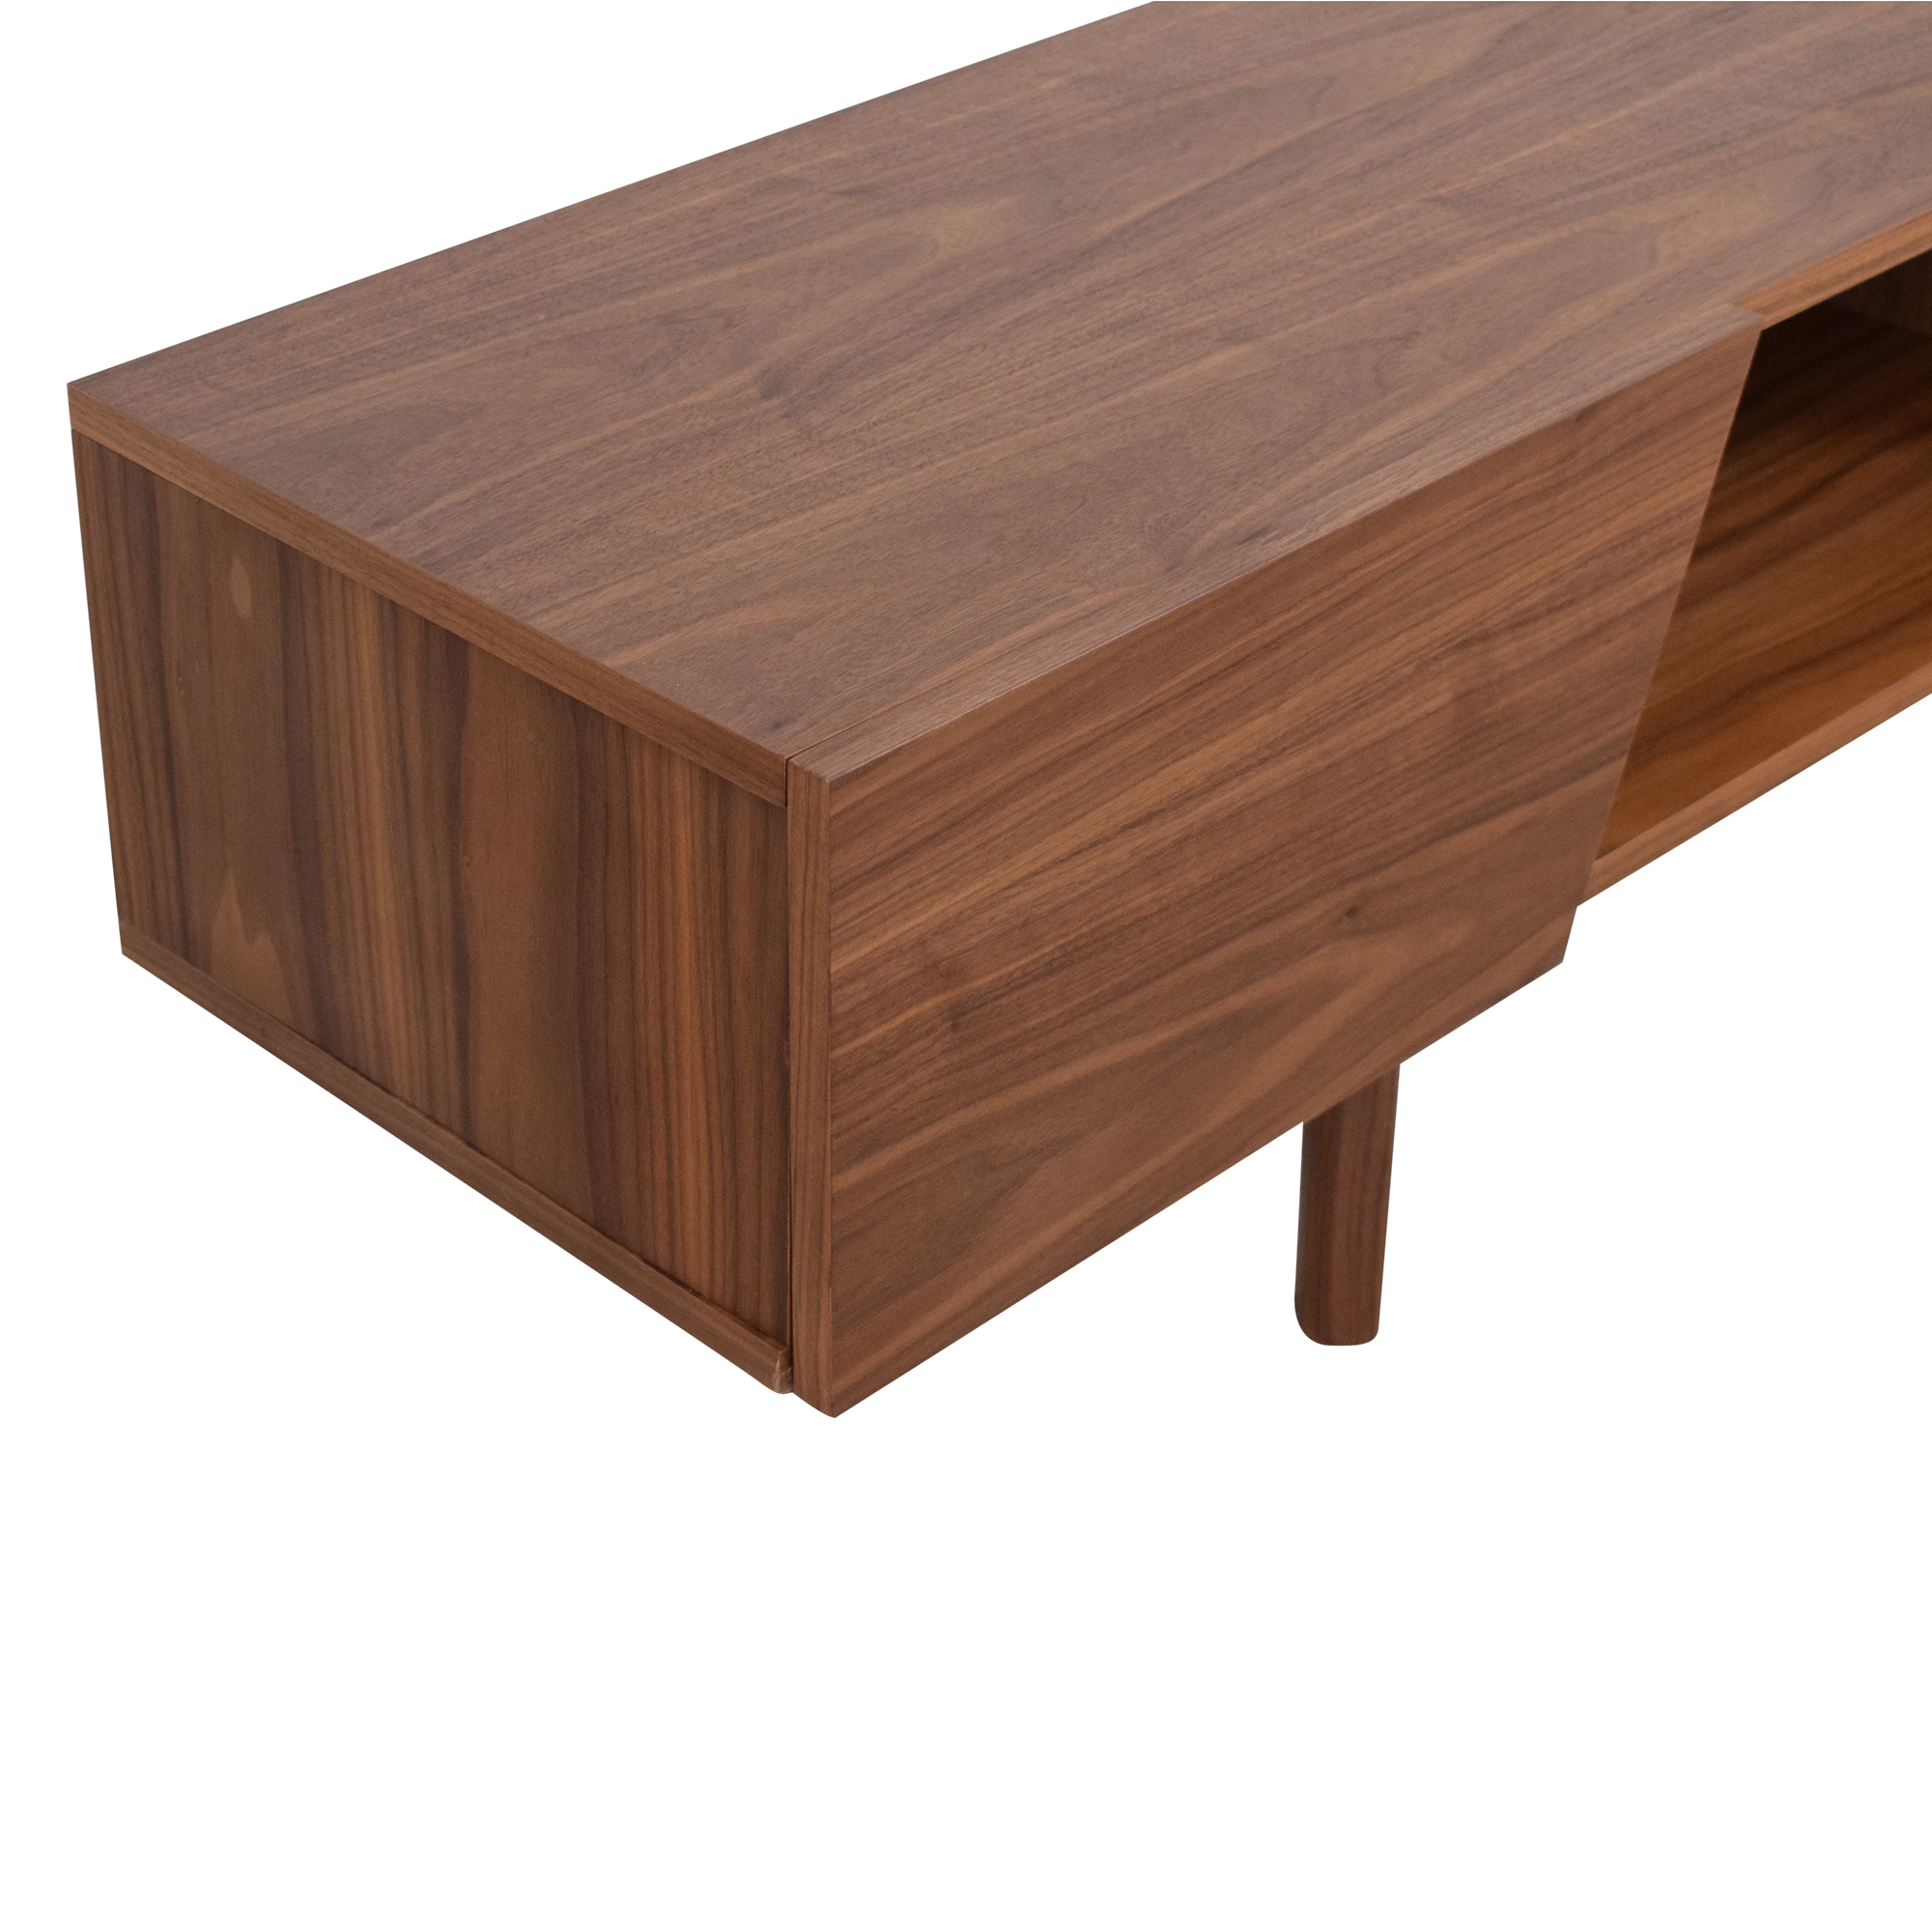 Modani Modani Cama TV Stand Walnut on sale